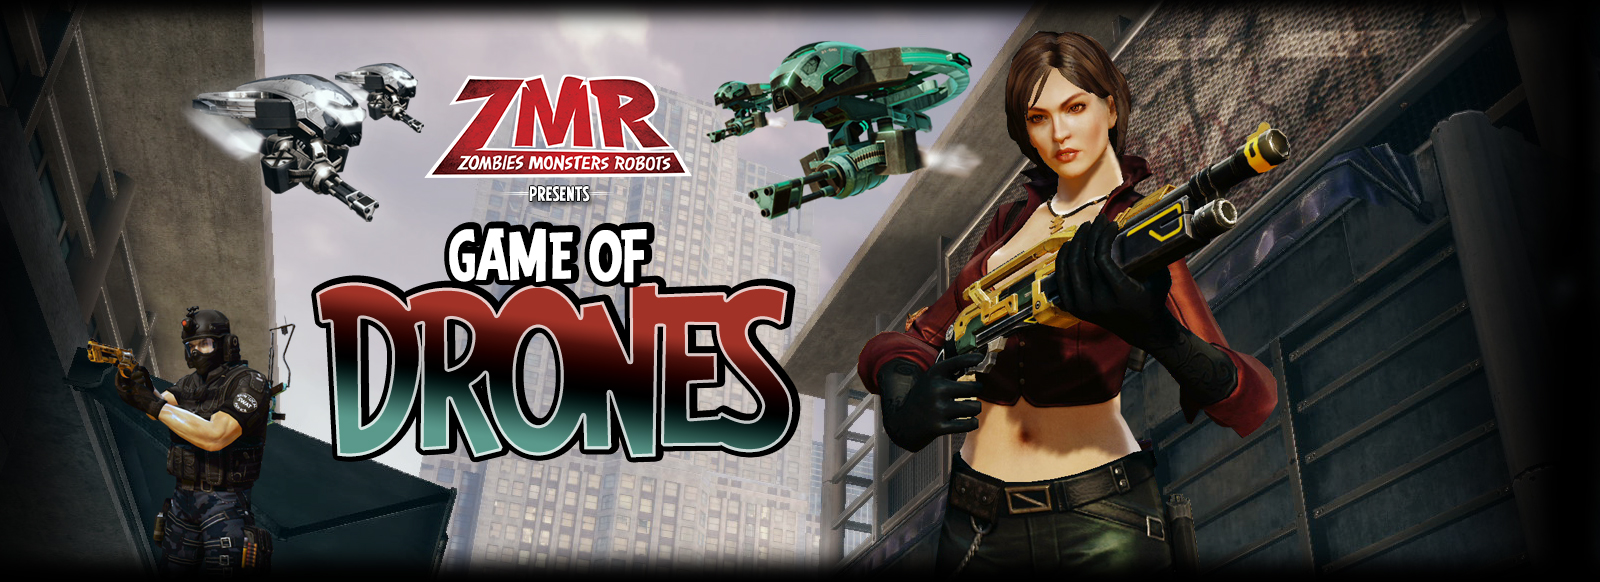 ZMR Game of Drones Interview 1